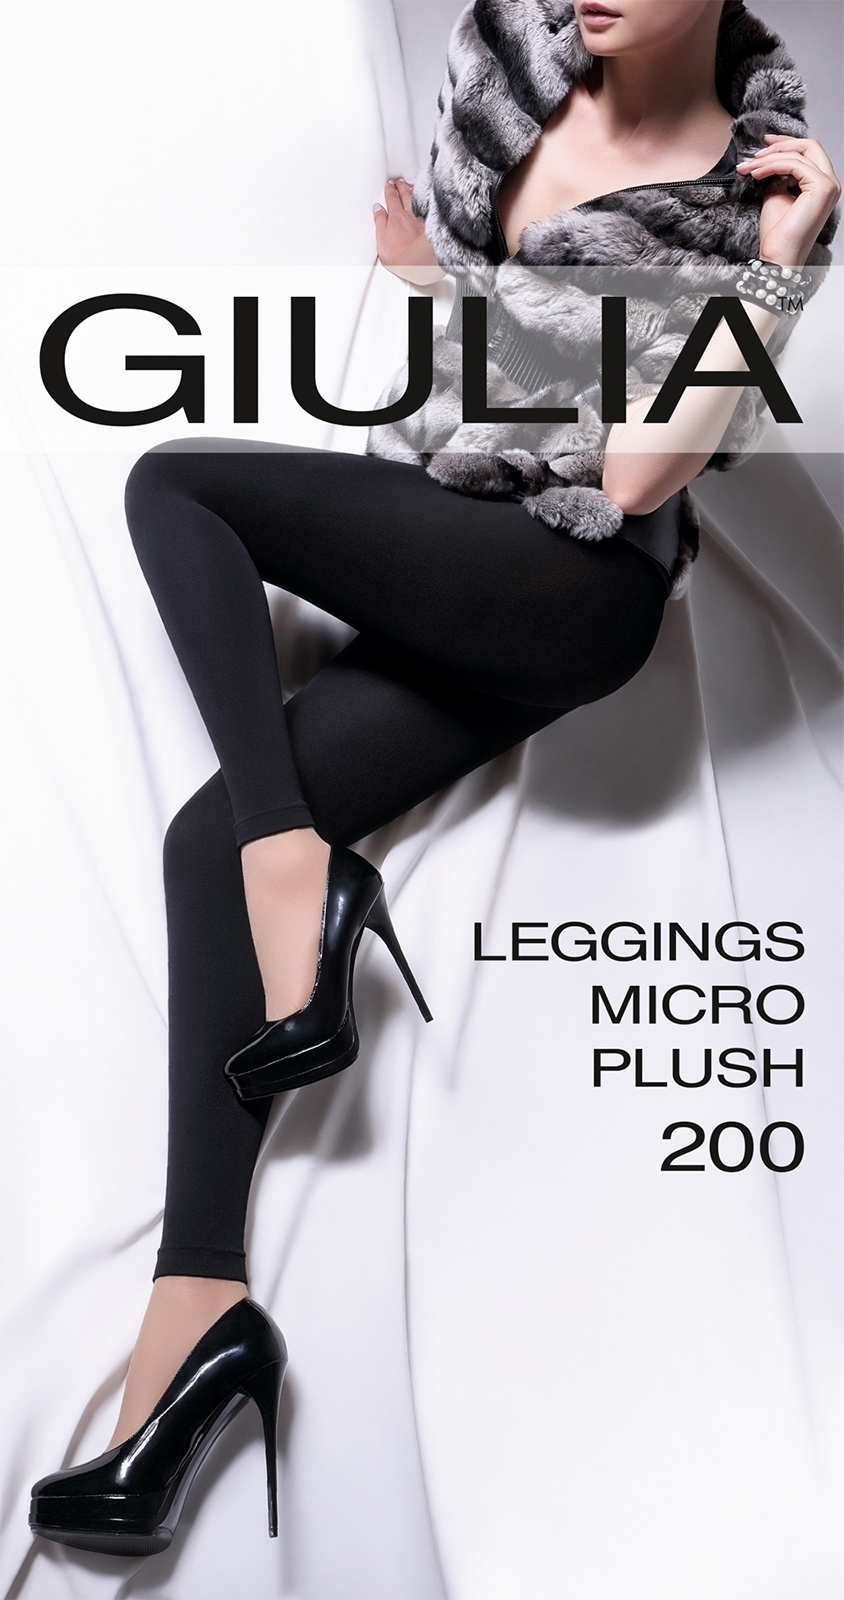 GIULIA Leggings Micro Plush 200